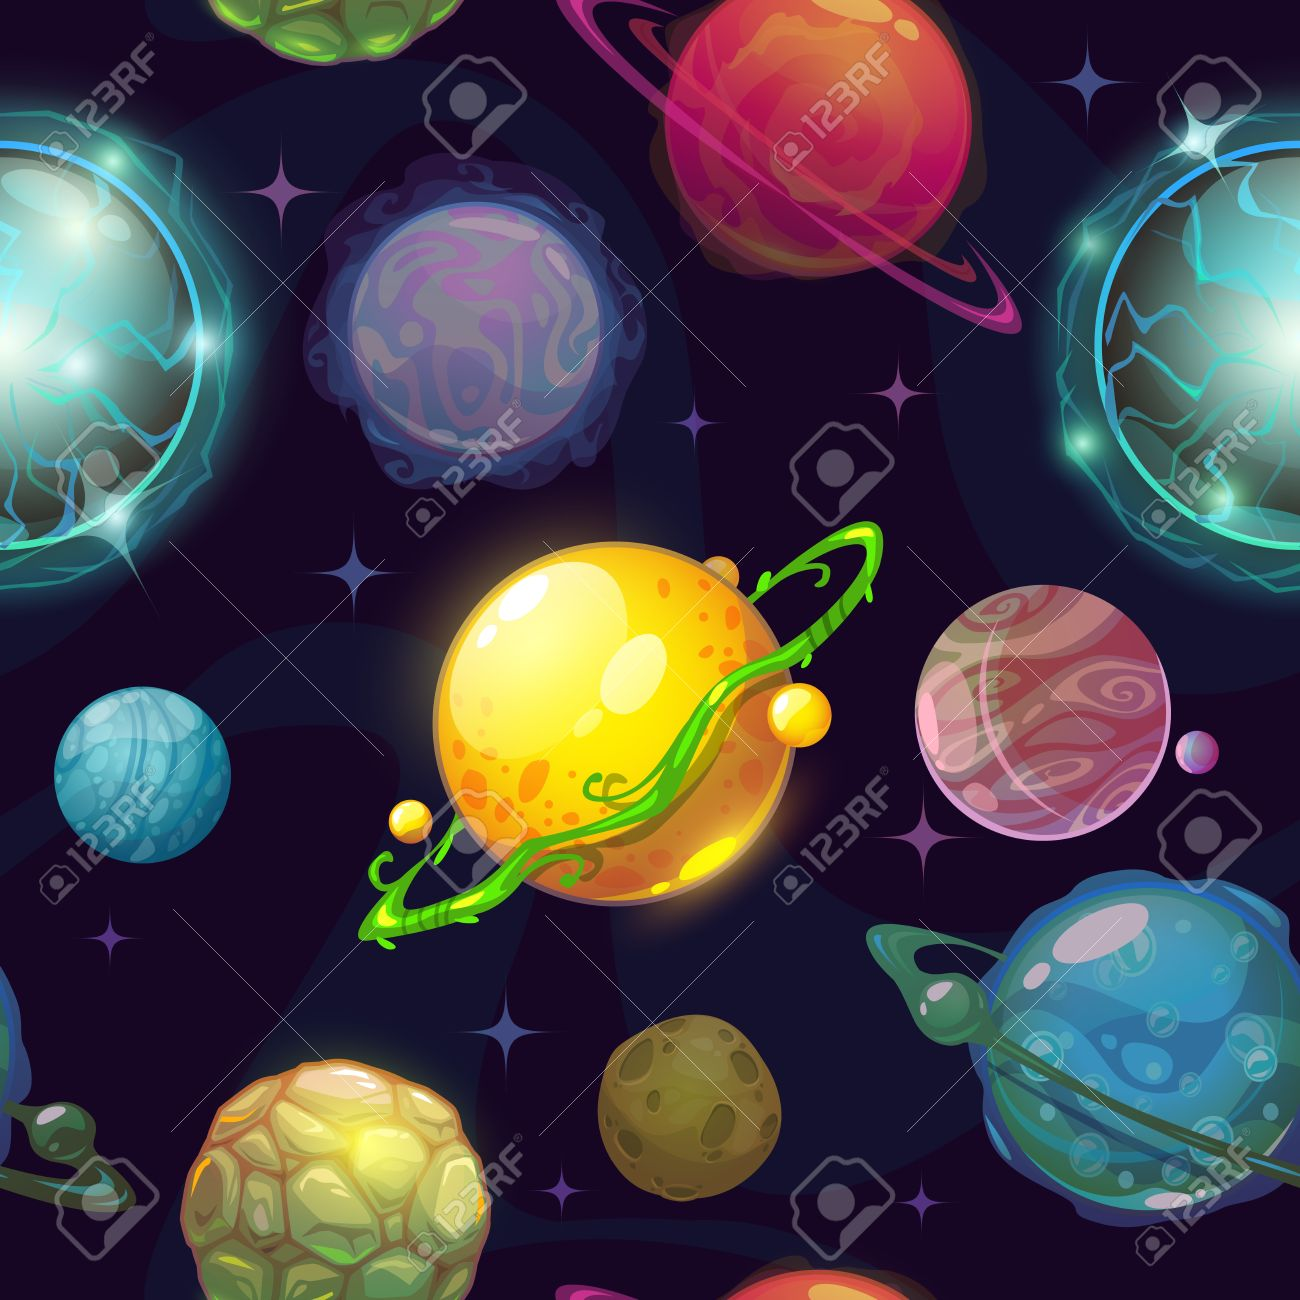 Seamless space pattern with cartoon planets, childish vector space illustration, fantasy planets on space